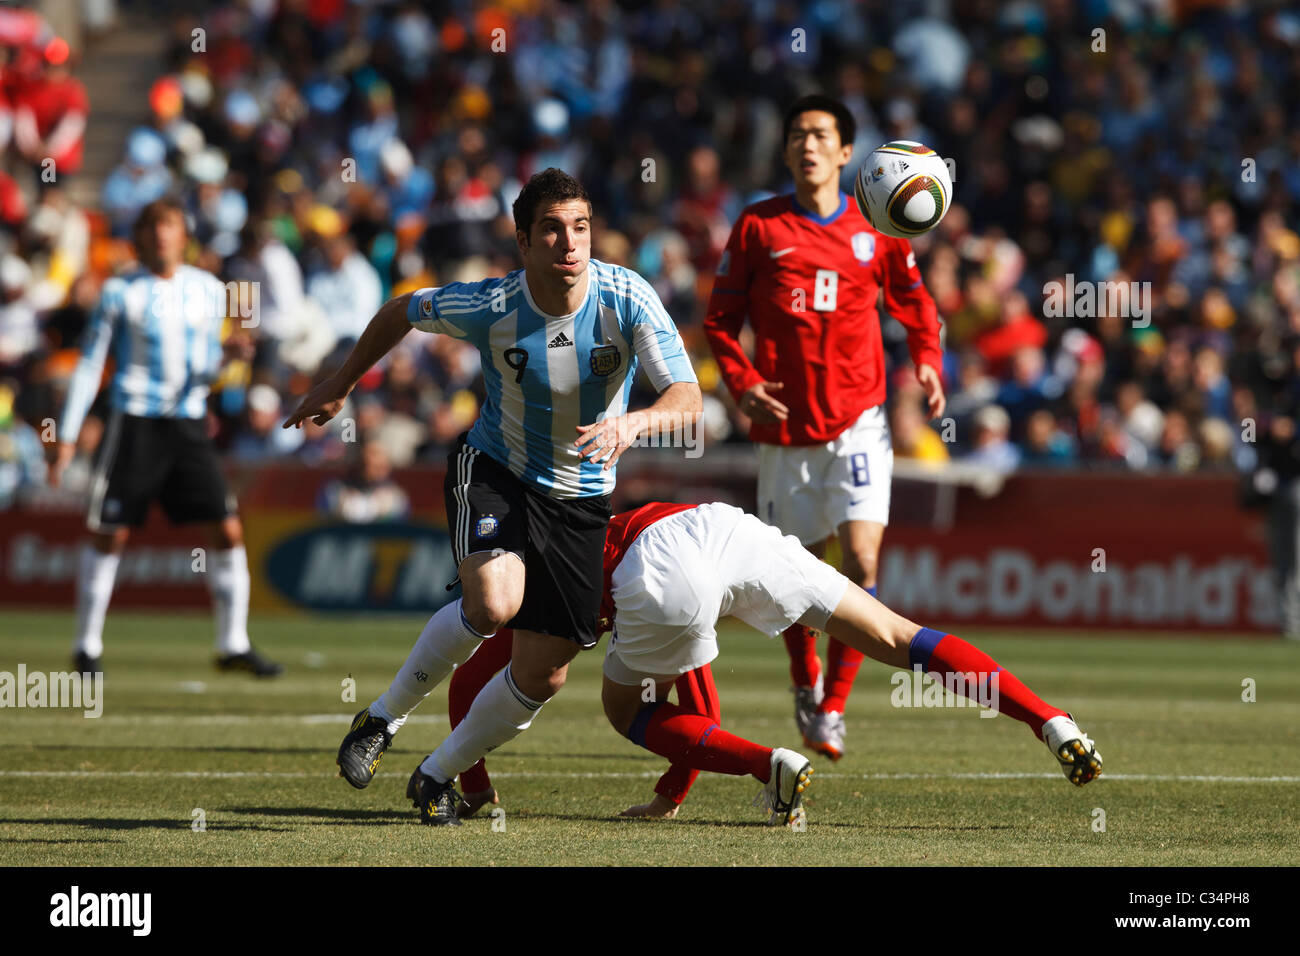 Gonzalo Higuain of Argentina chases the ball during a 2010 FIFA World Cup football match against South Korea June - Stock Image